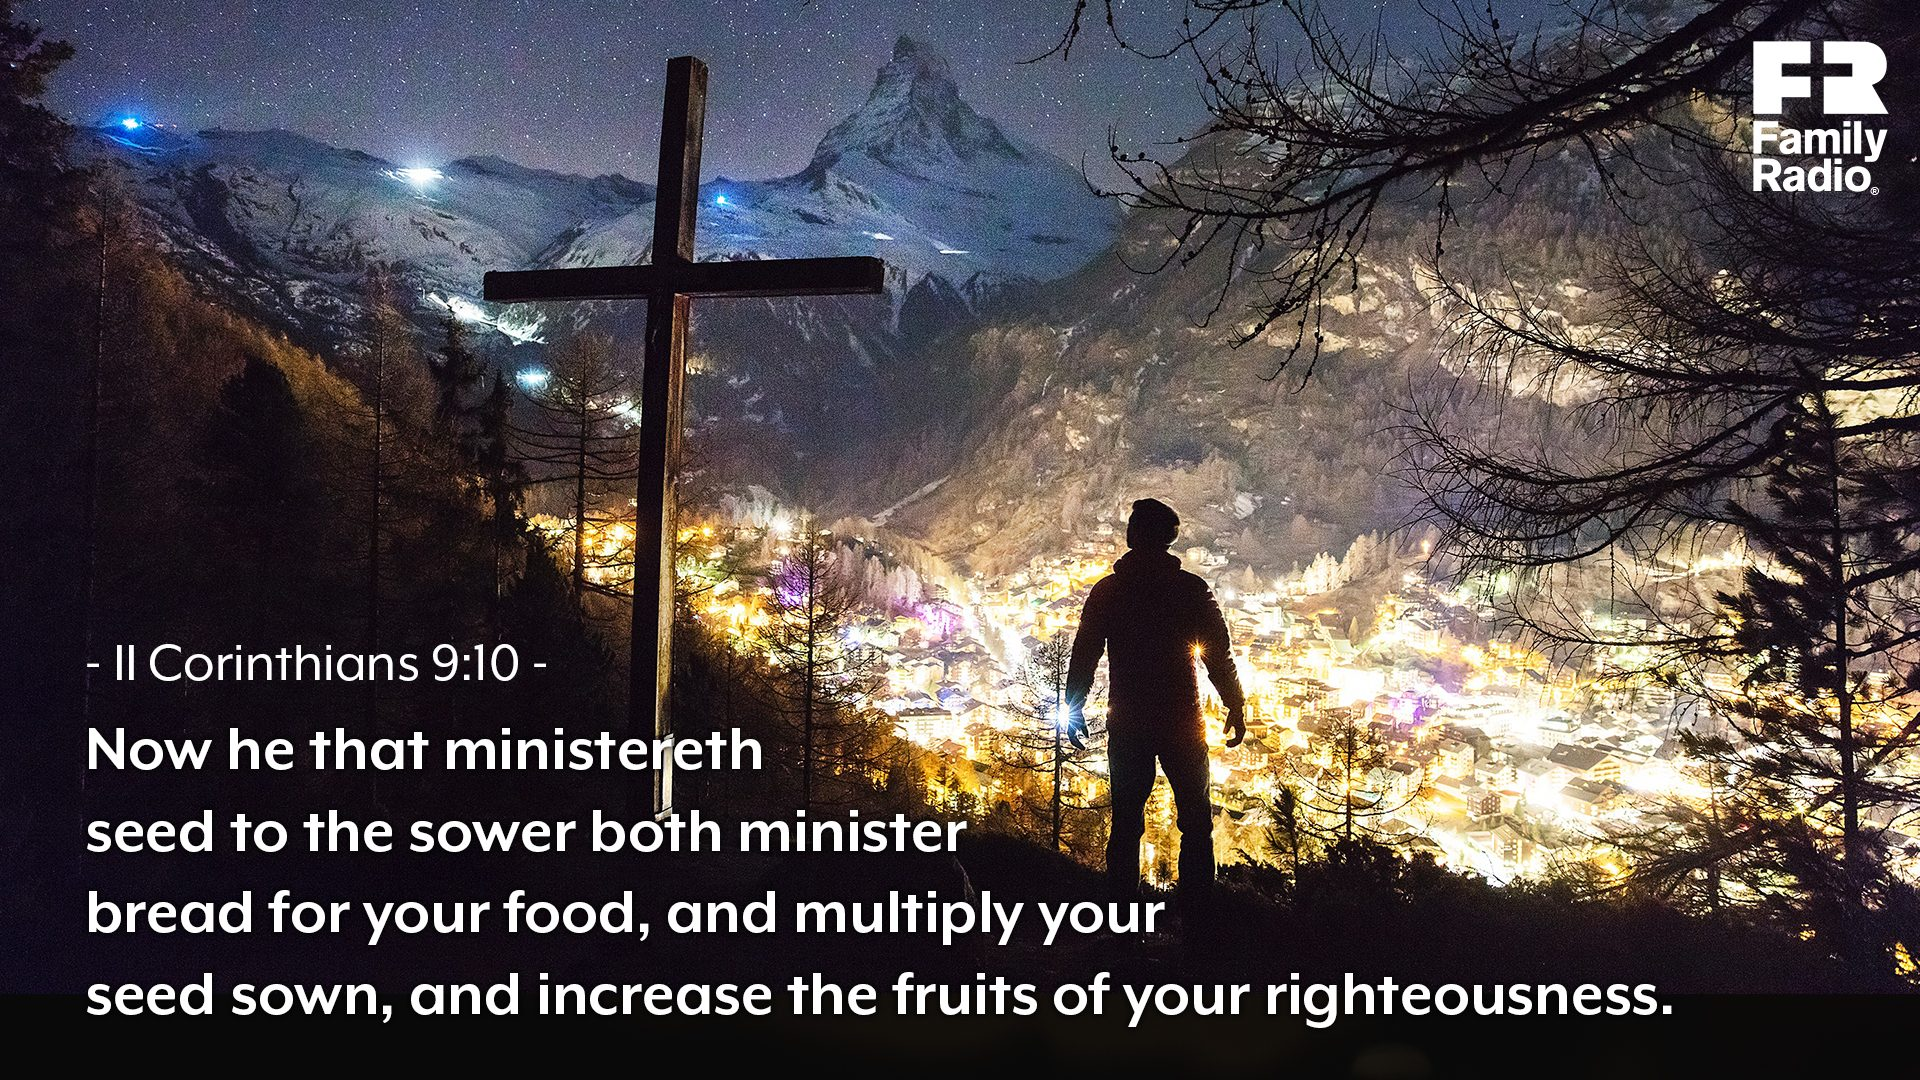 """Now he that ministereth seed to the sower both minister bread for your food, and multiply your seed sown, and increase the fruits of your righteousness."""